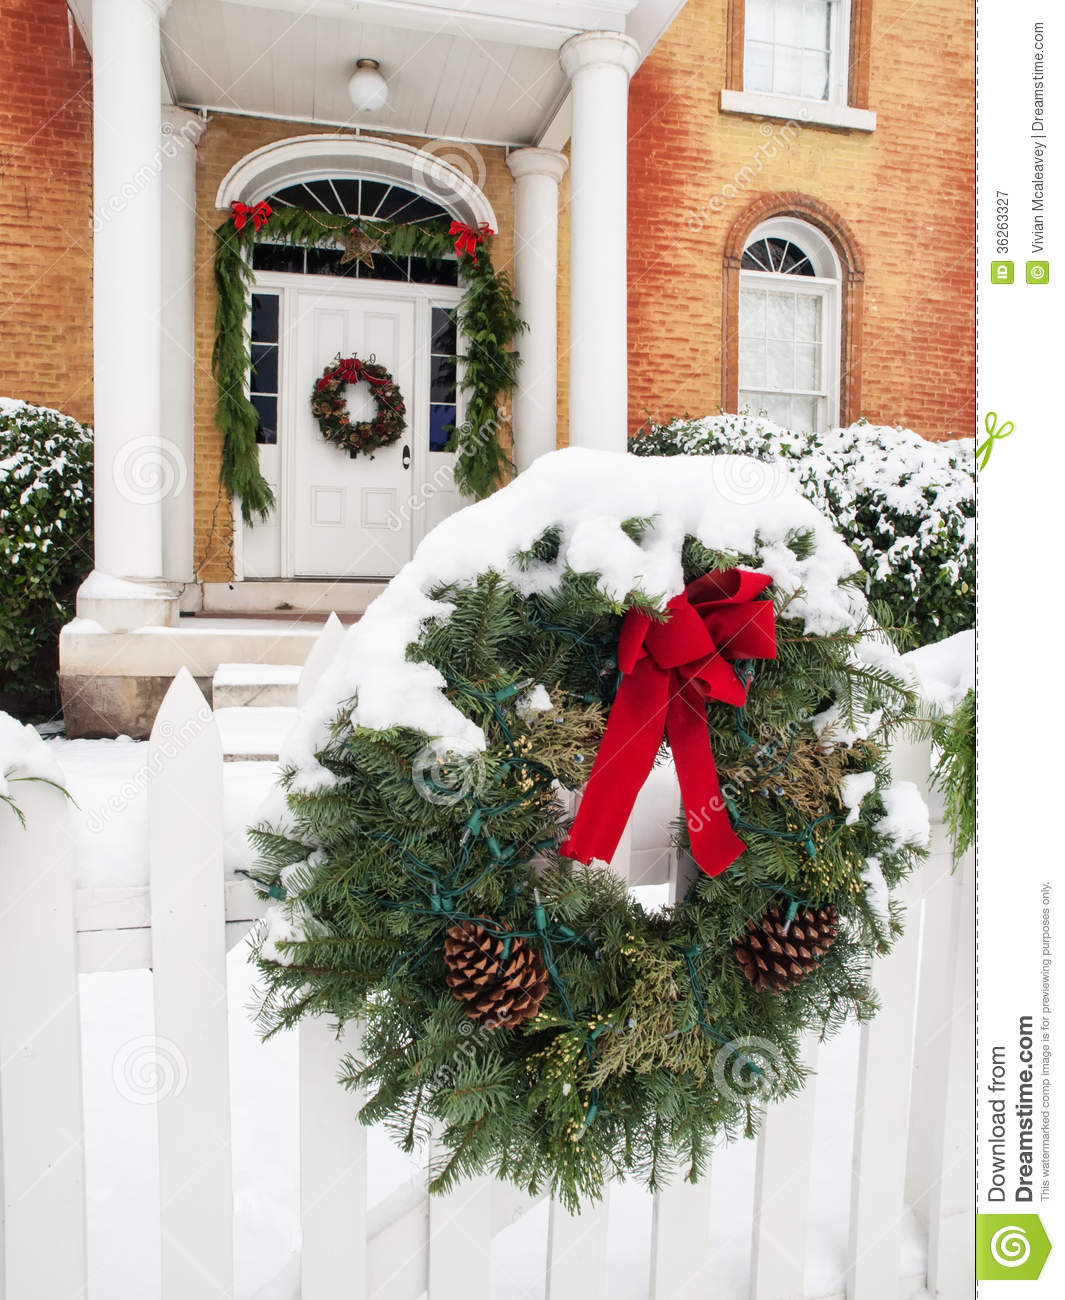 Old House Christmas Decorations: Historic Home With Christmas Decorations Royalty Free